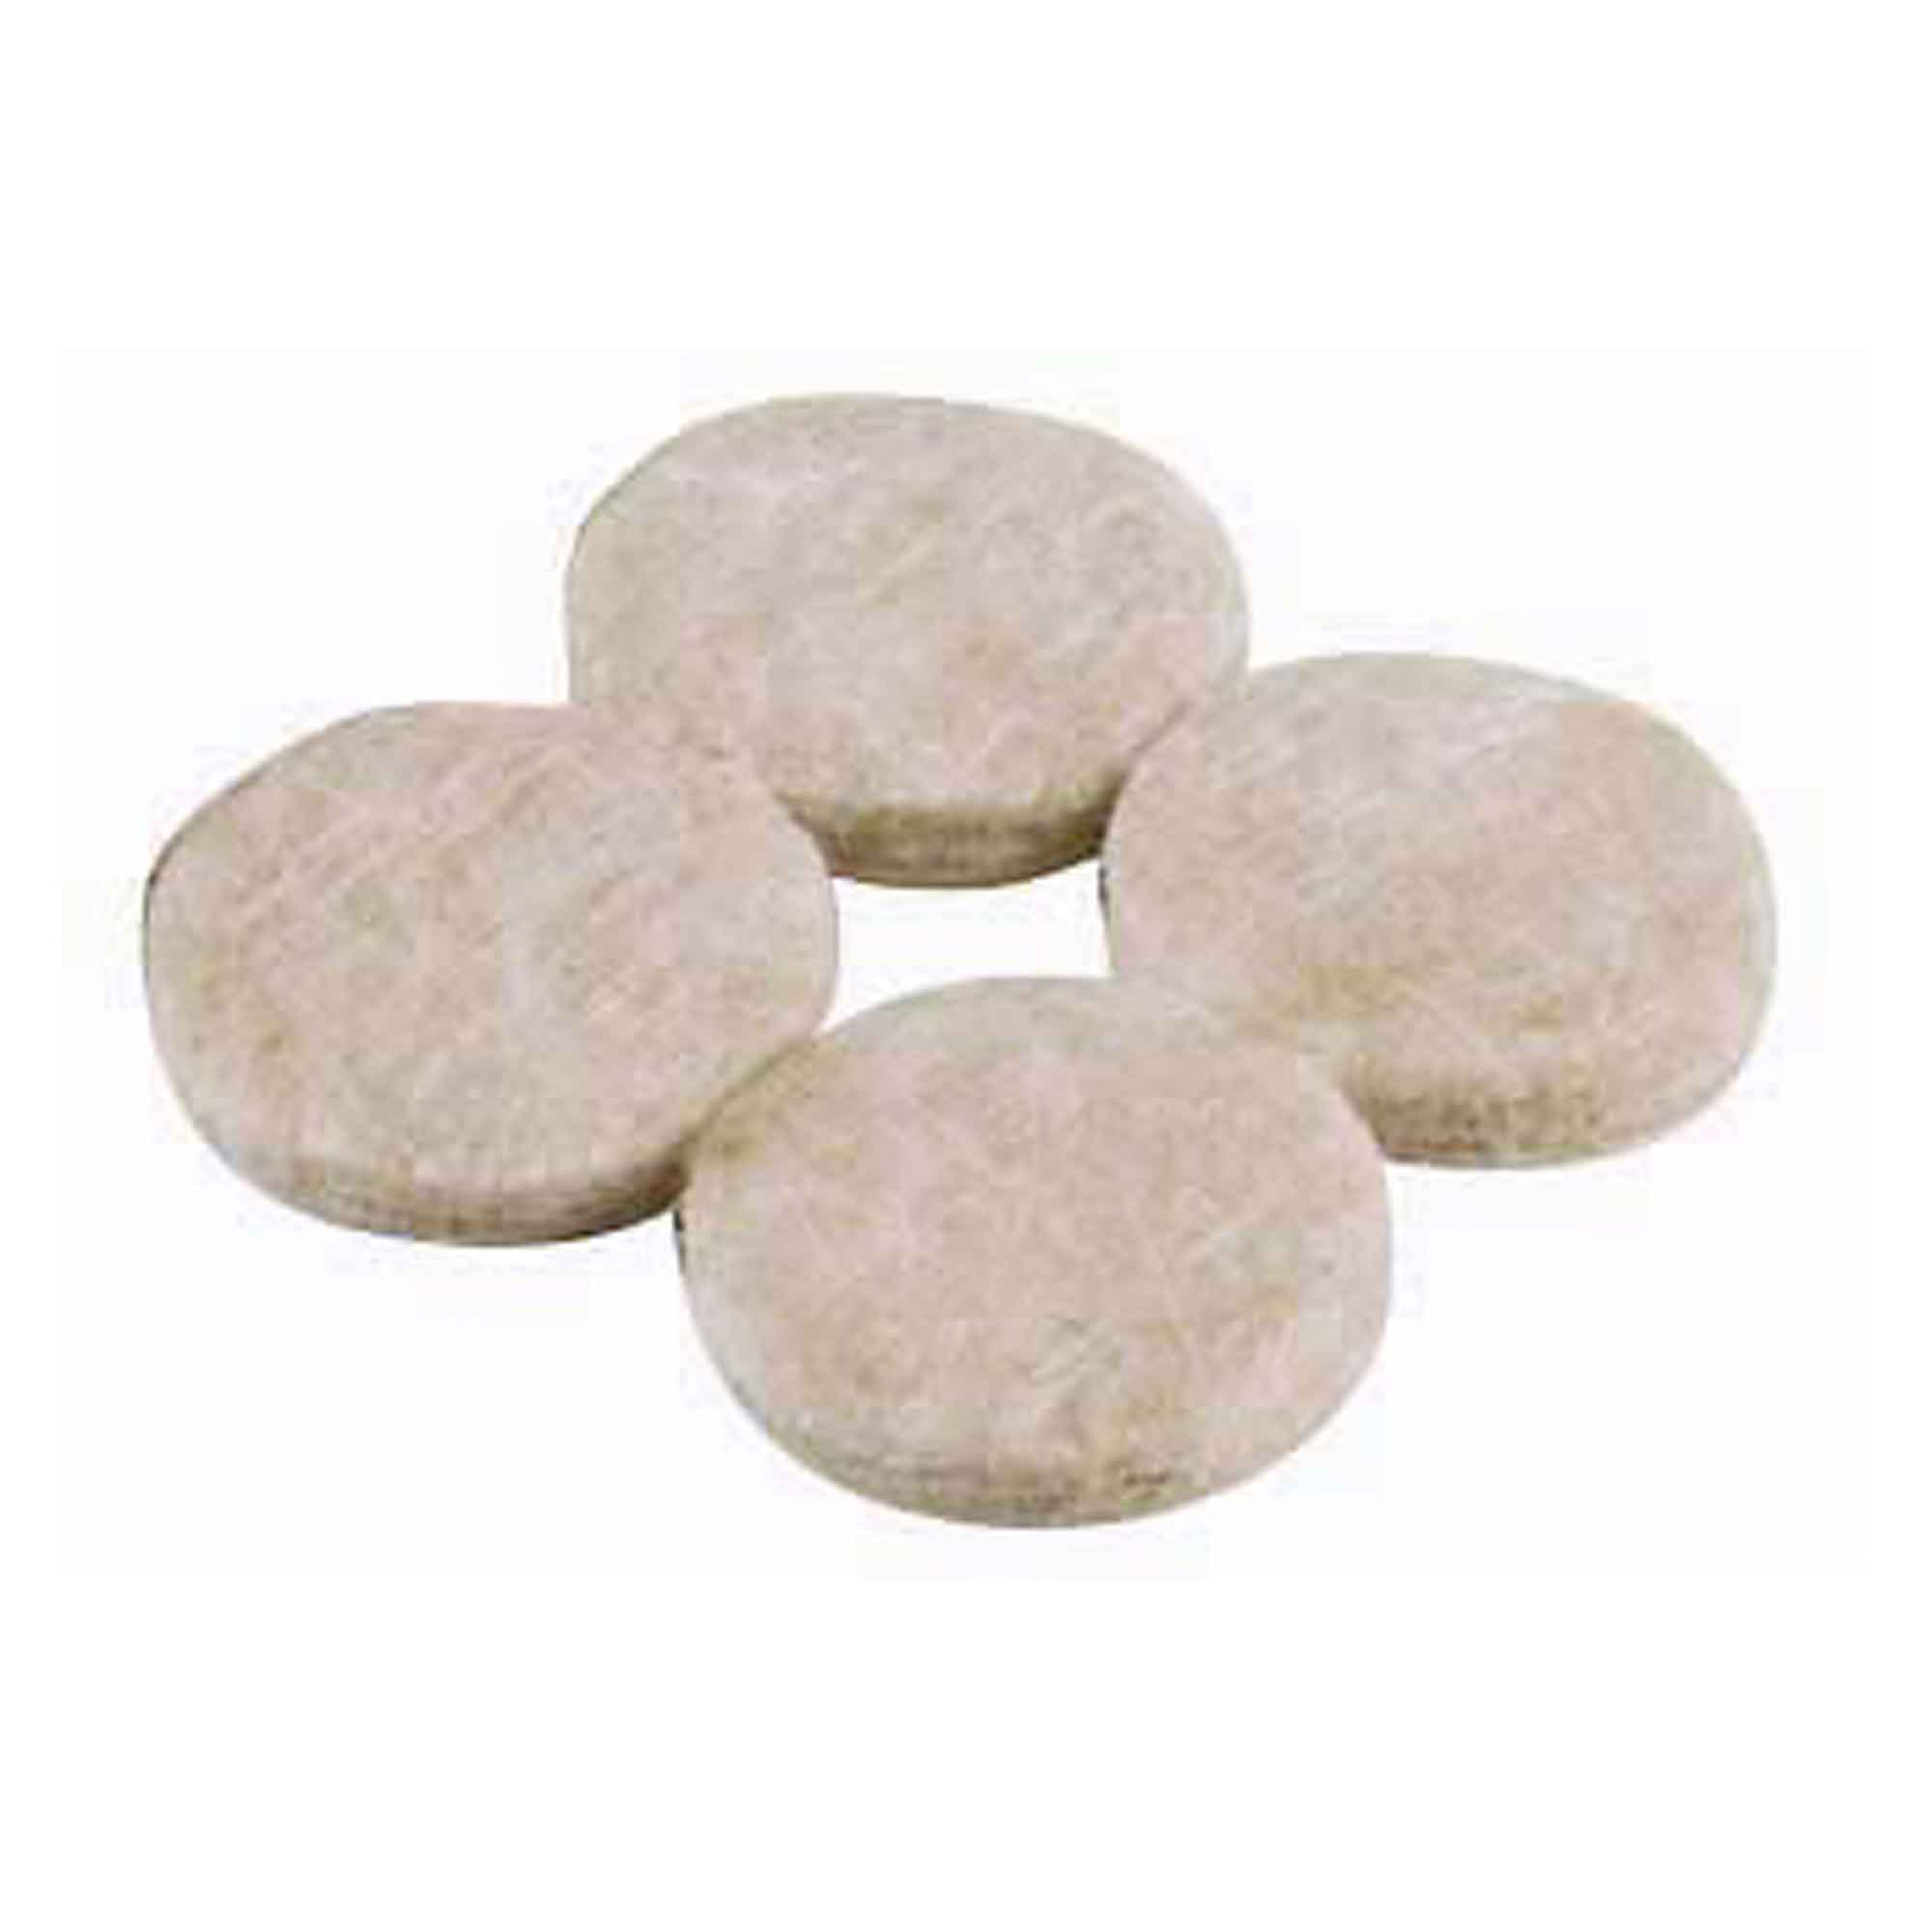 Select Heavy Duty Felt Pads Round 38mm Pack of 8